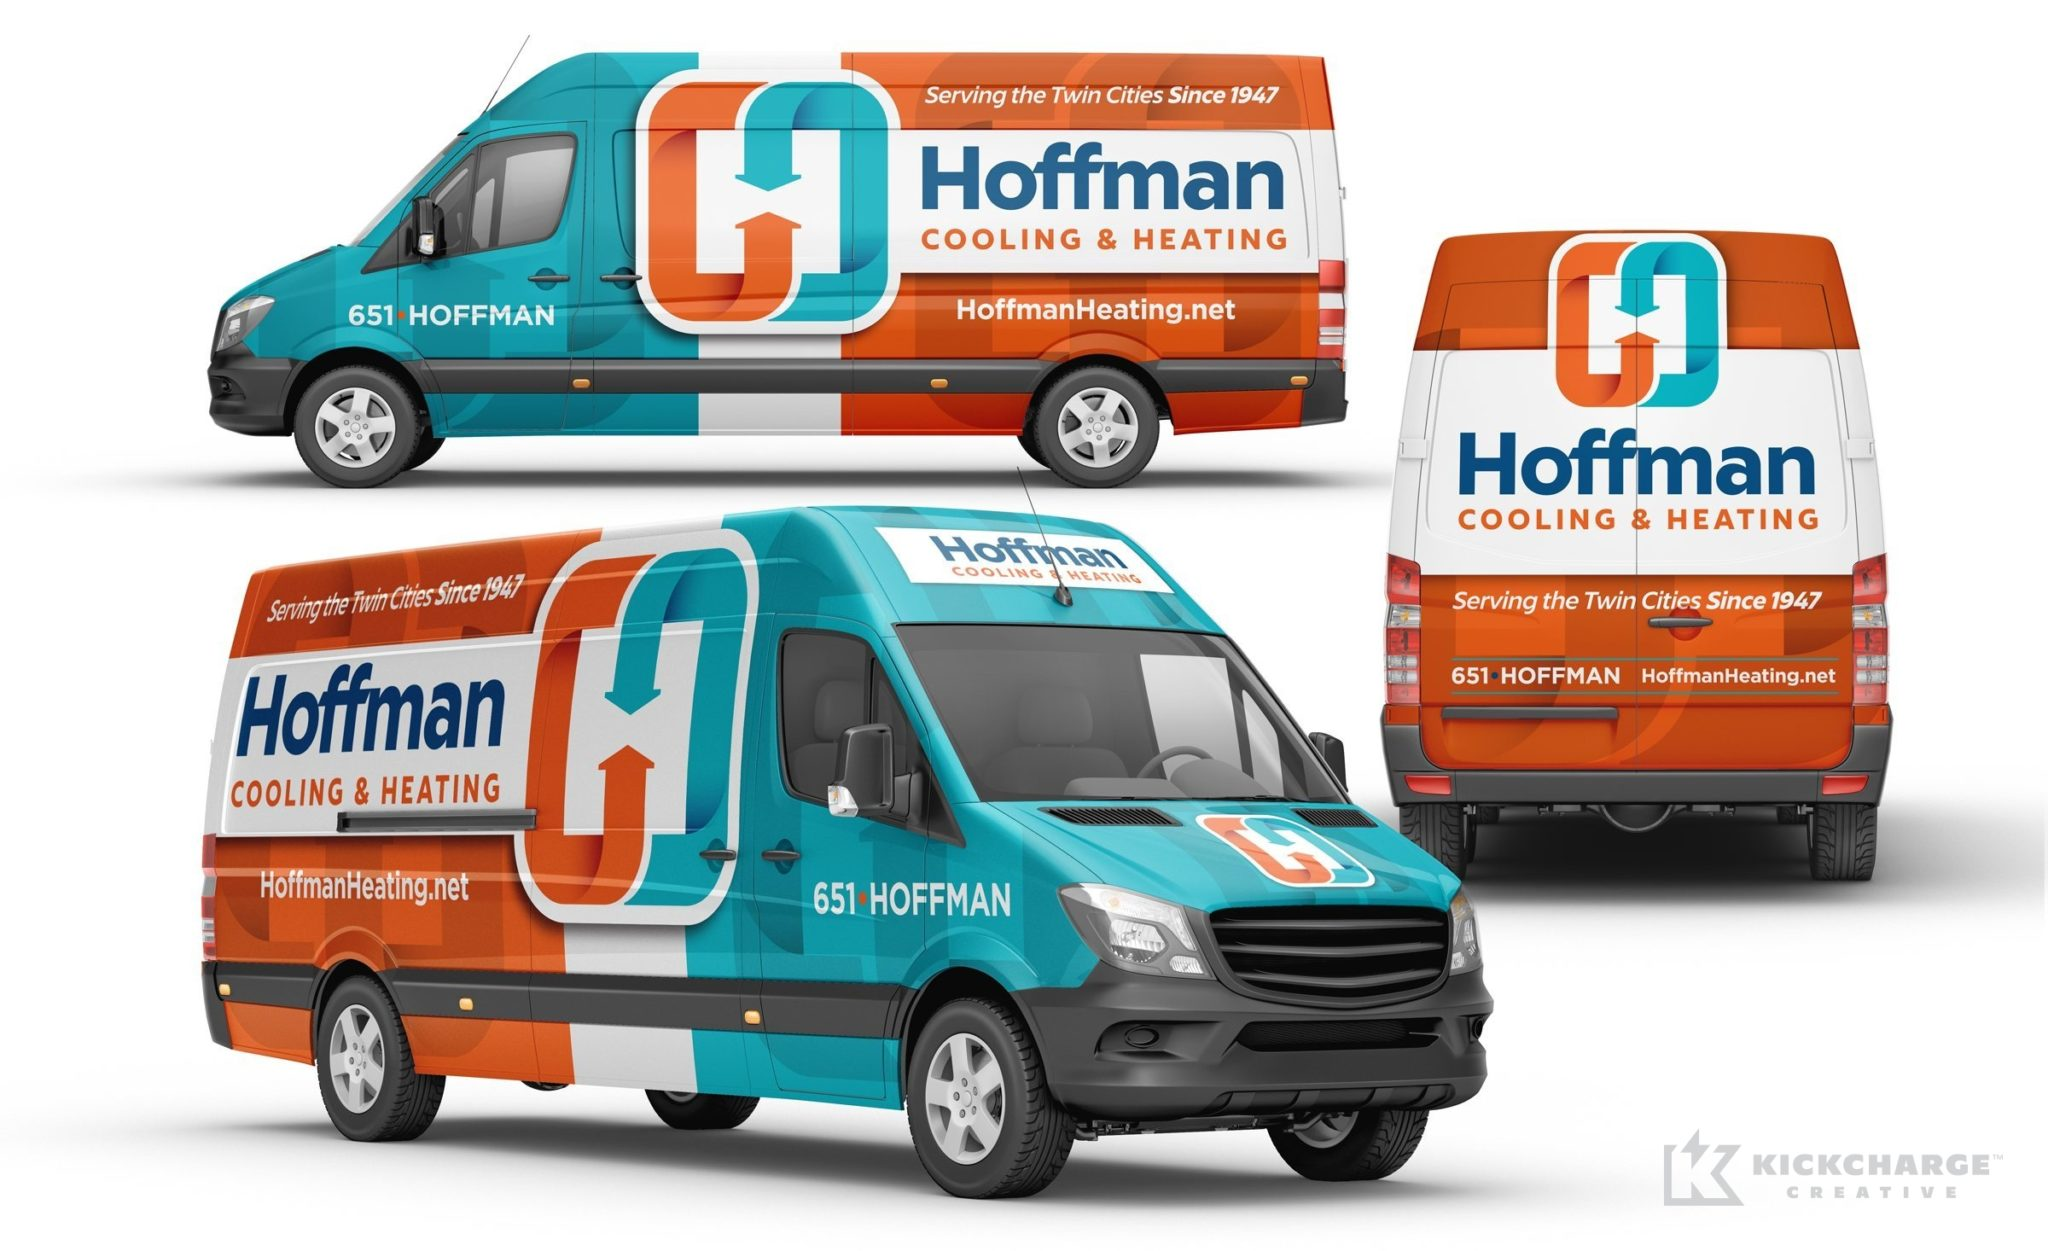 Vehicle wrap design for Hoffman Cooling & Heating, an HVAC contractor in Minnesota.